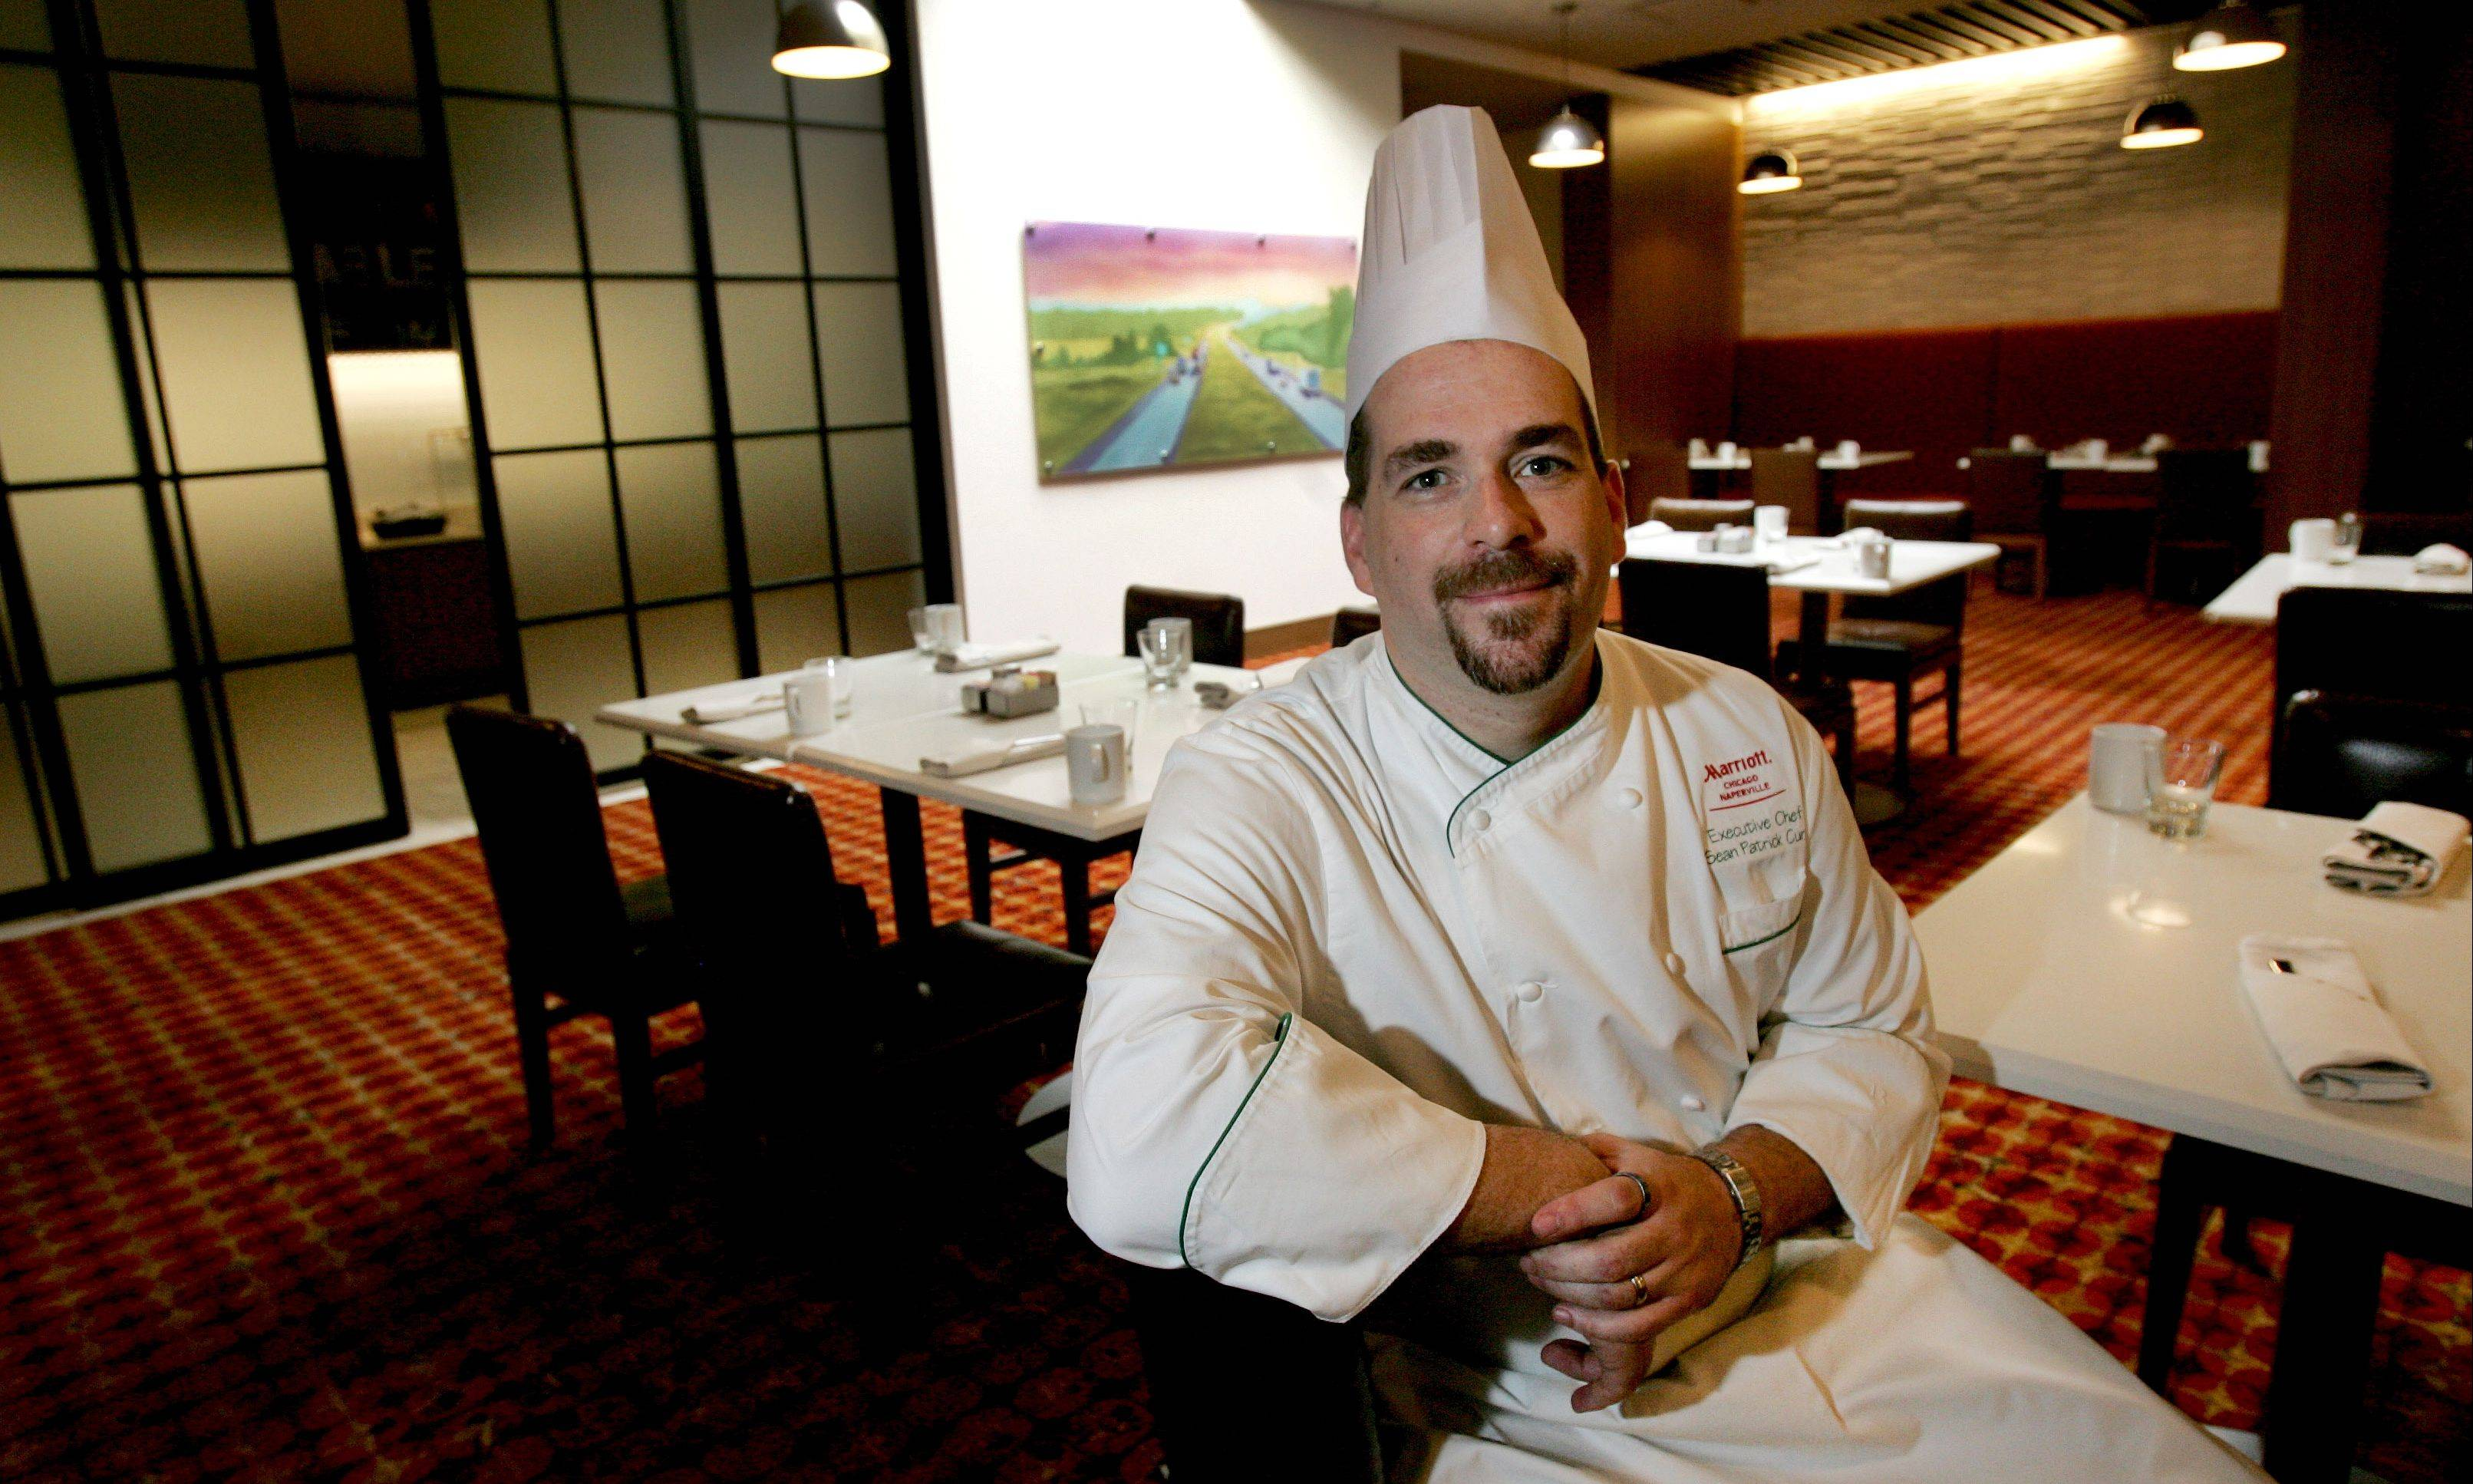 Chef Sean Patrick Curry has settled in at Artisan Table, the restaurant inside Naperville's new Marriott.